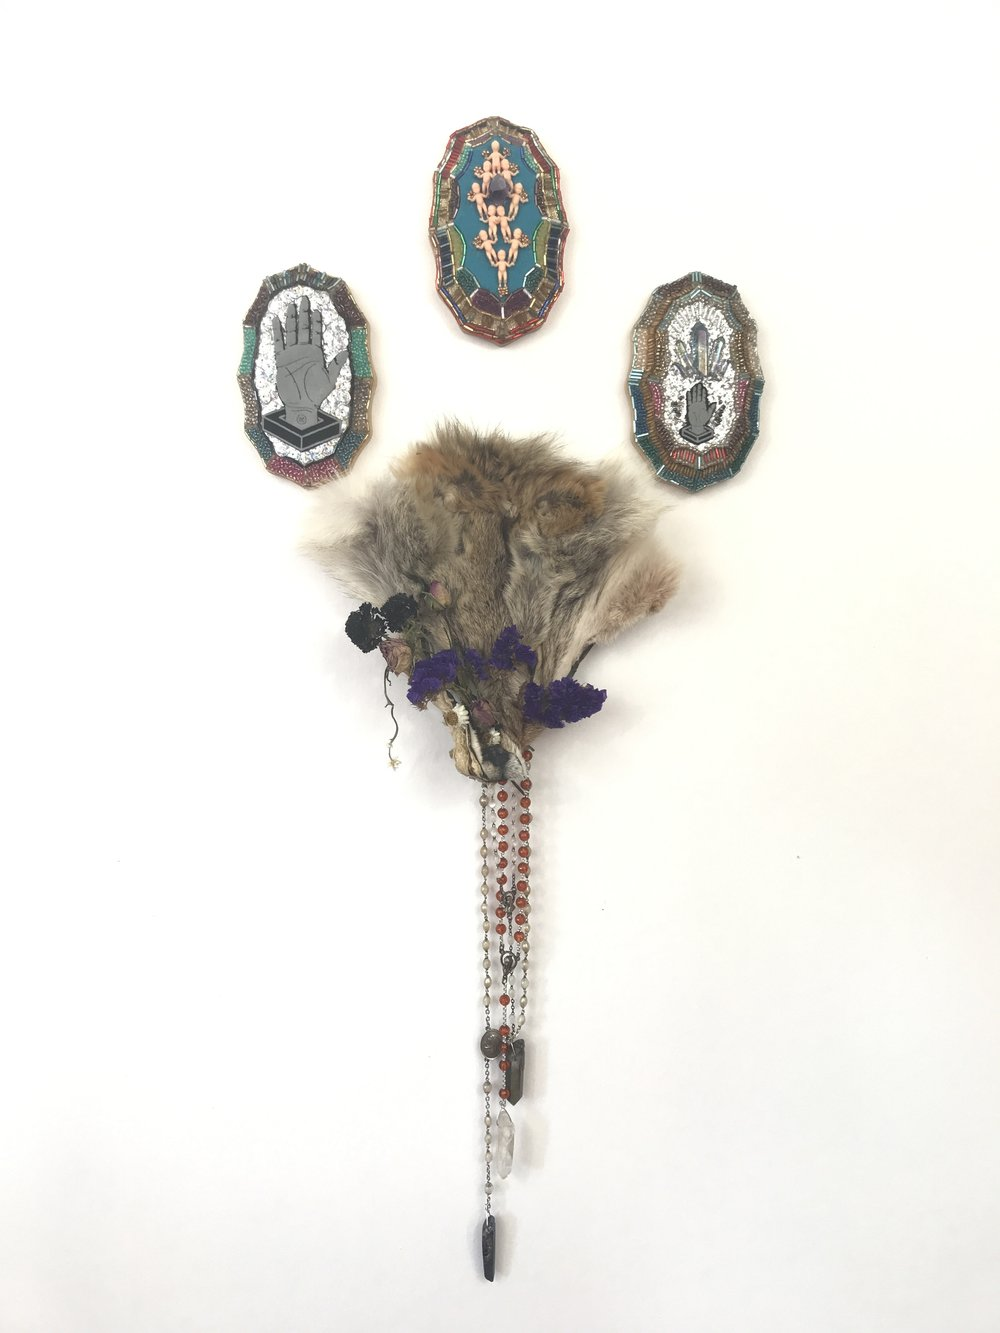 Nunca Más  - Multimedia assemblage (coyote skin, dried flowers, rosary beads, crystals, sequins, miniatures), 2017